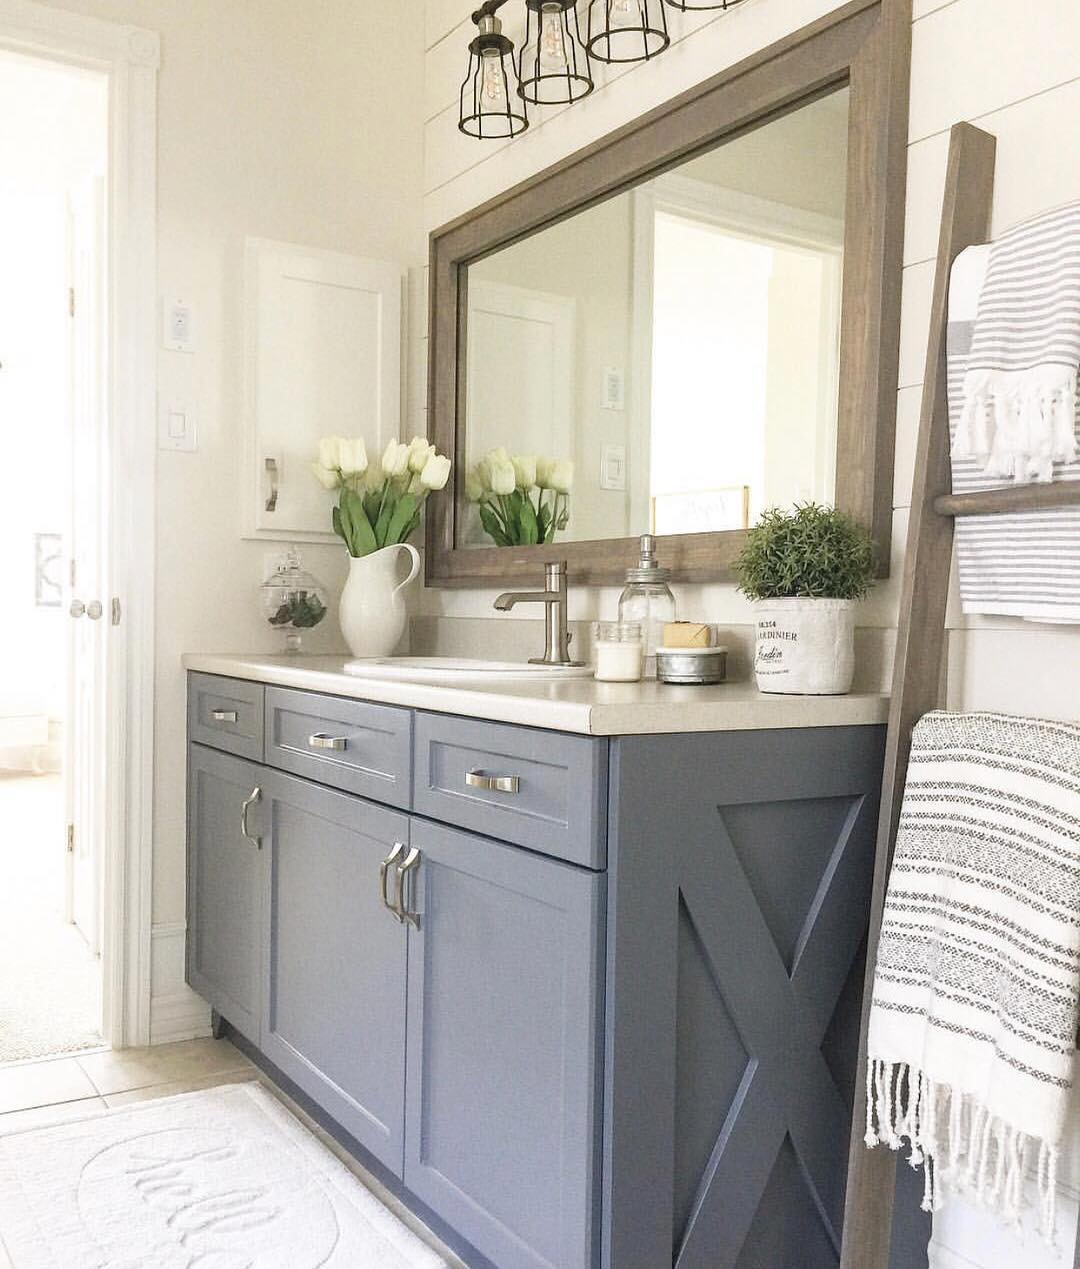 35 bathroomdesign Ideas You'll Love DIY;diybathroom;bathroomdesign;farmhousebathroom;simplehomestyle;fixerupperstyle;vintagefinds